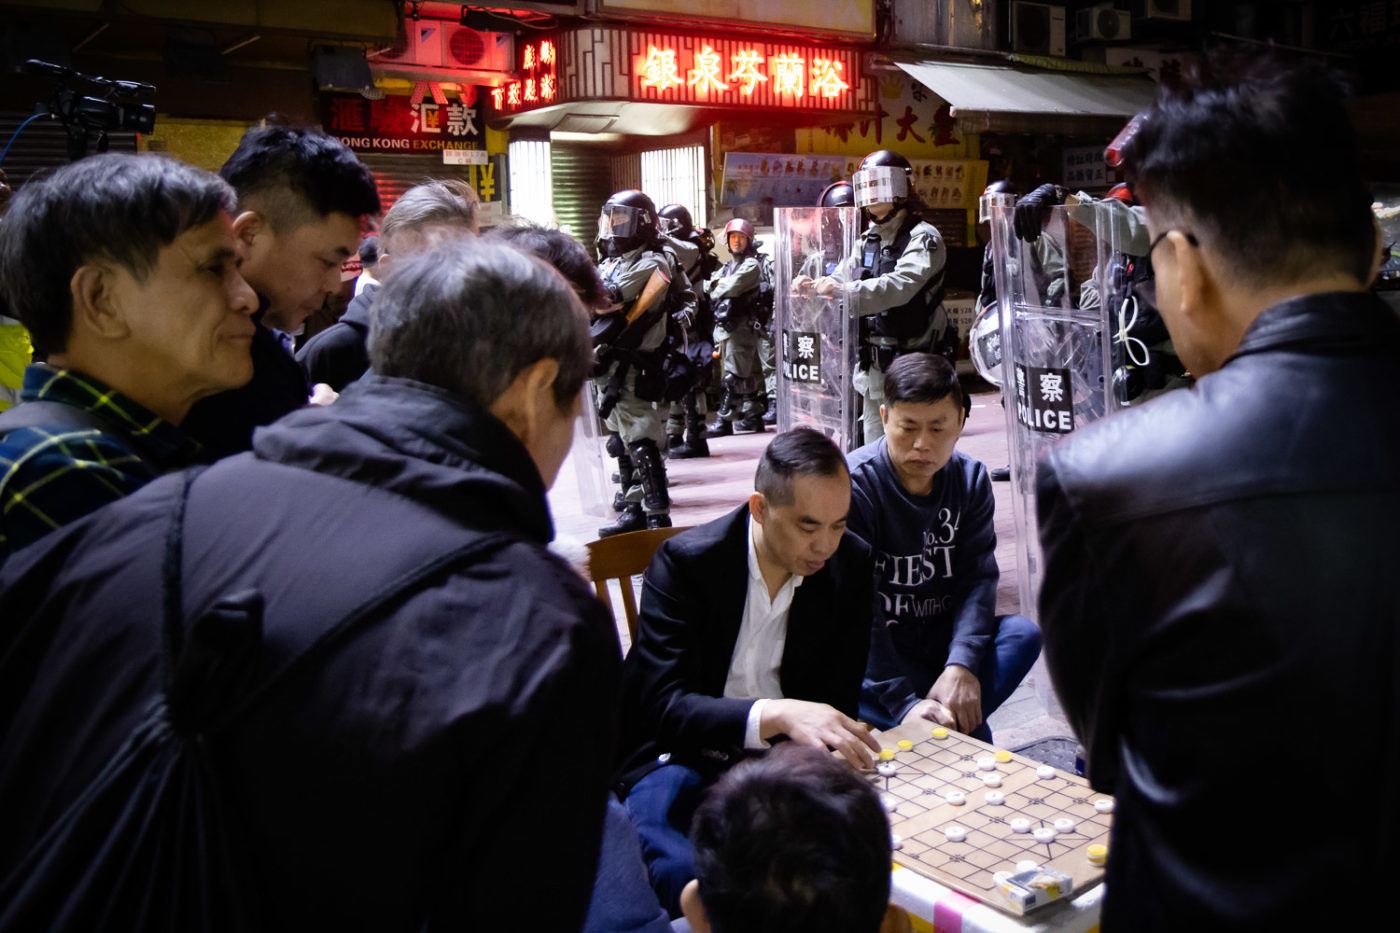 Men play Chinese Chess while Hong Kong riot police stand in background.